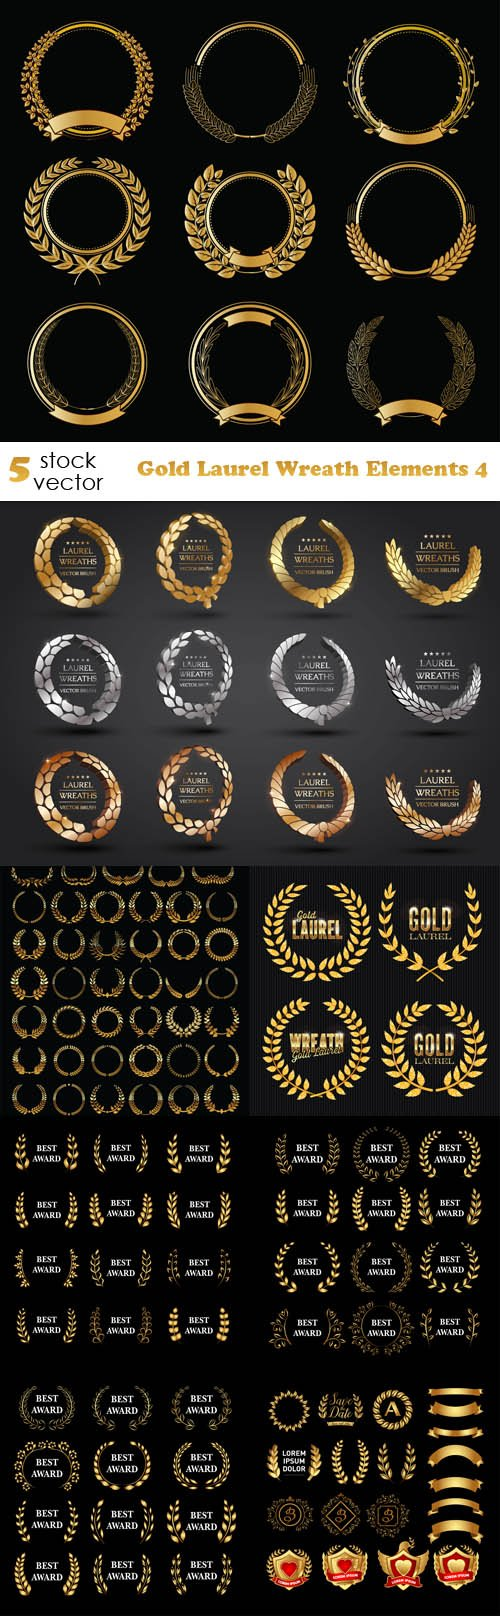 Vectors - Gold Laurel Wreath Elements 4